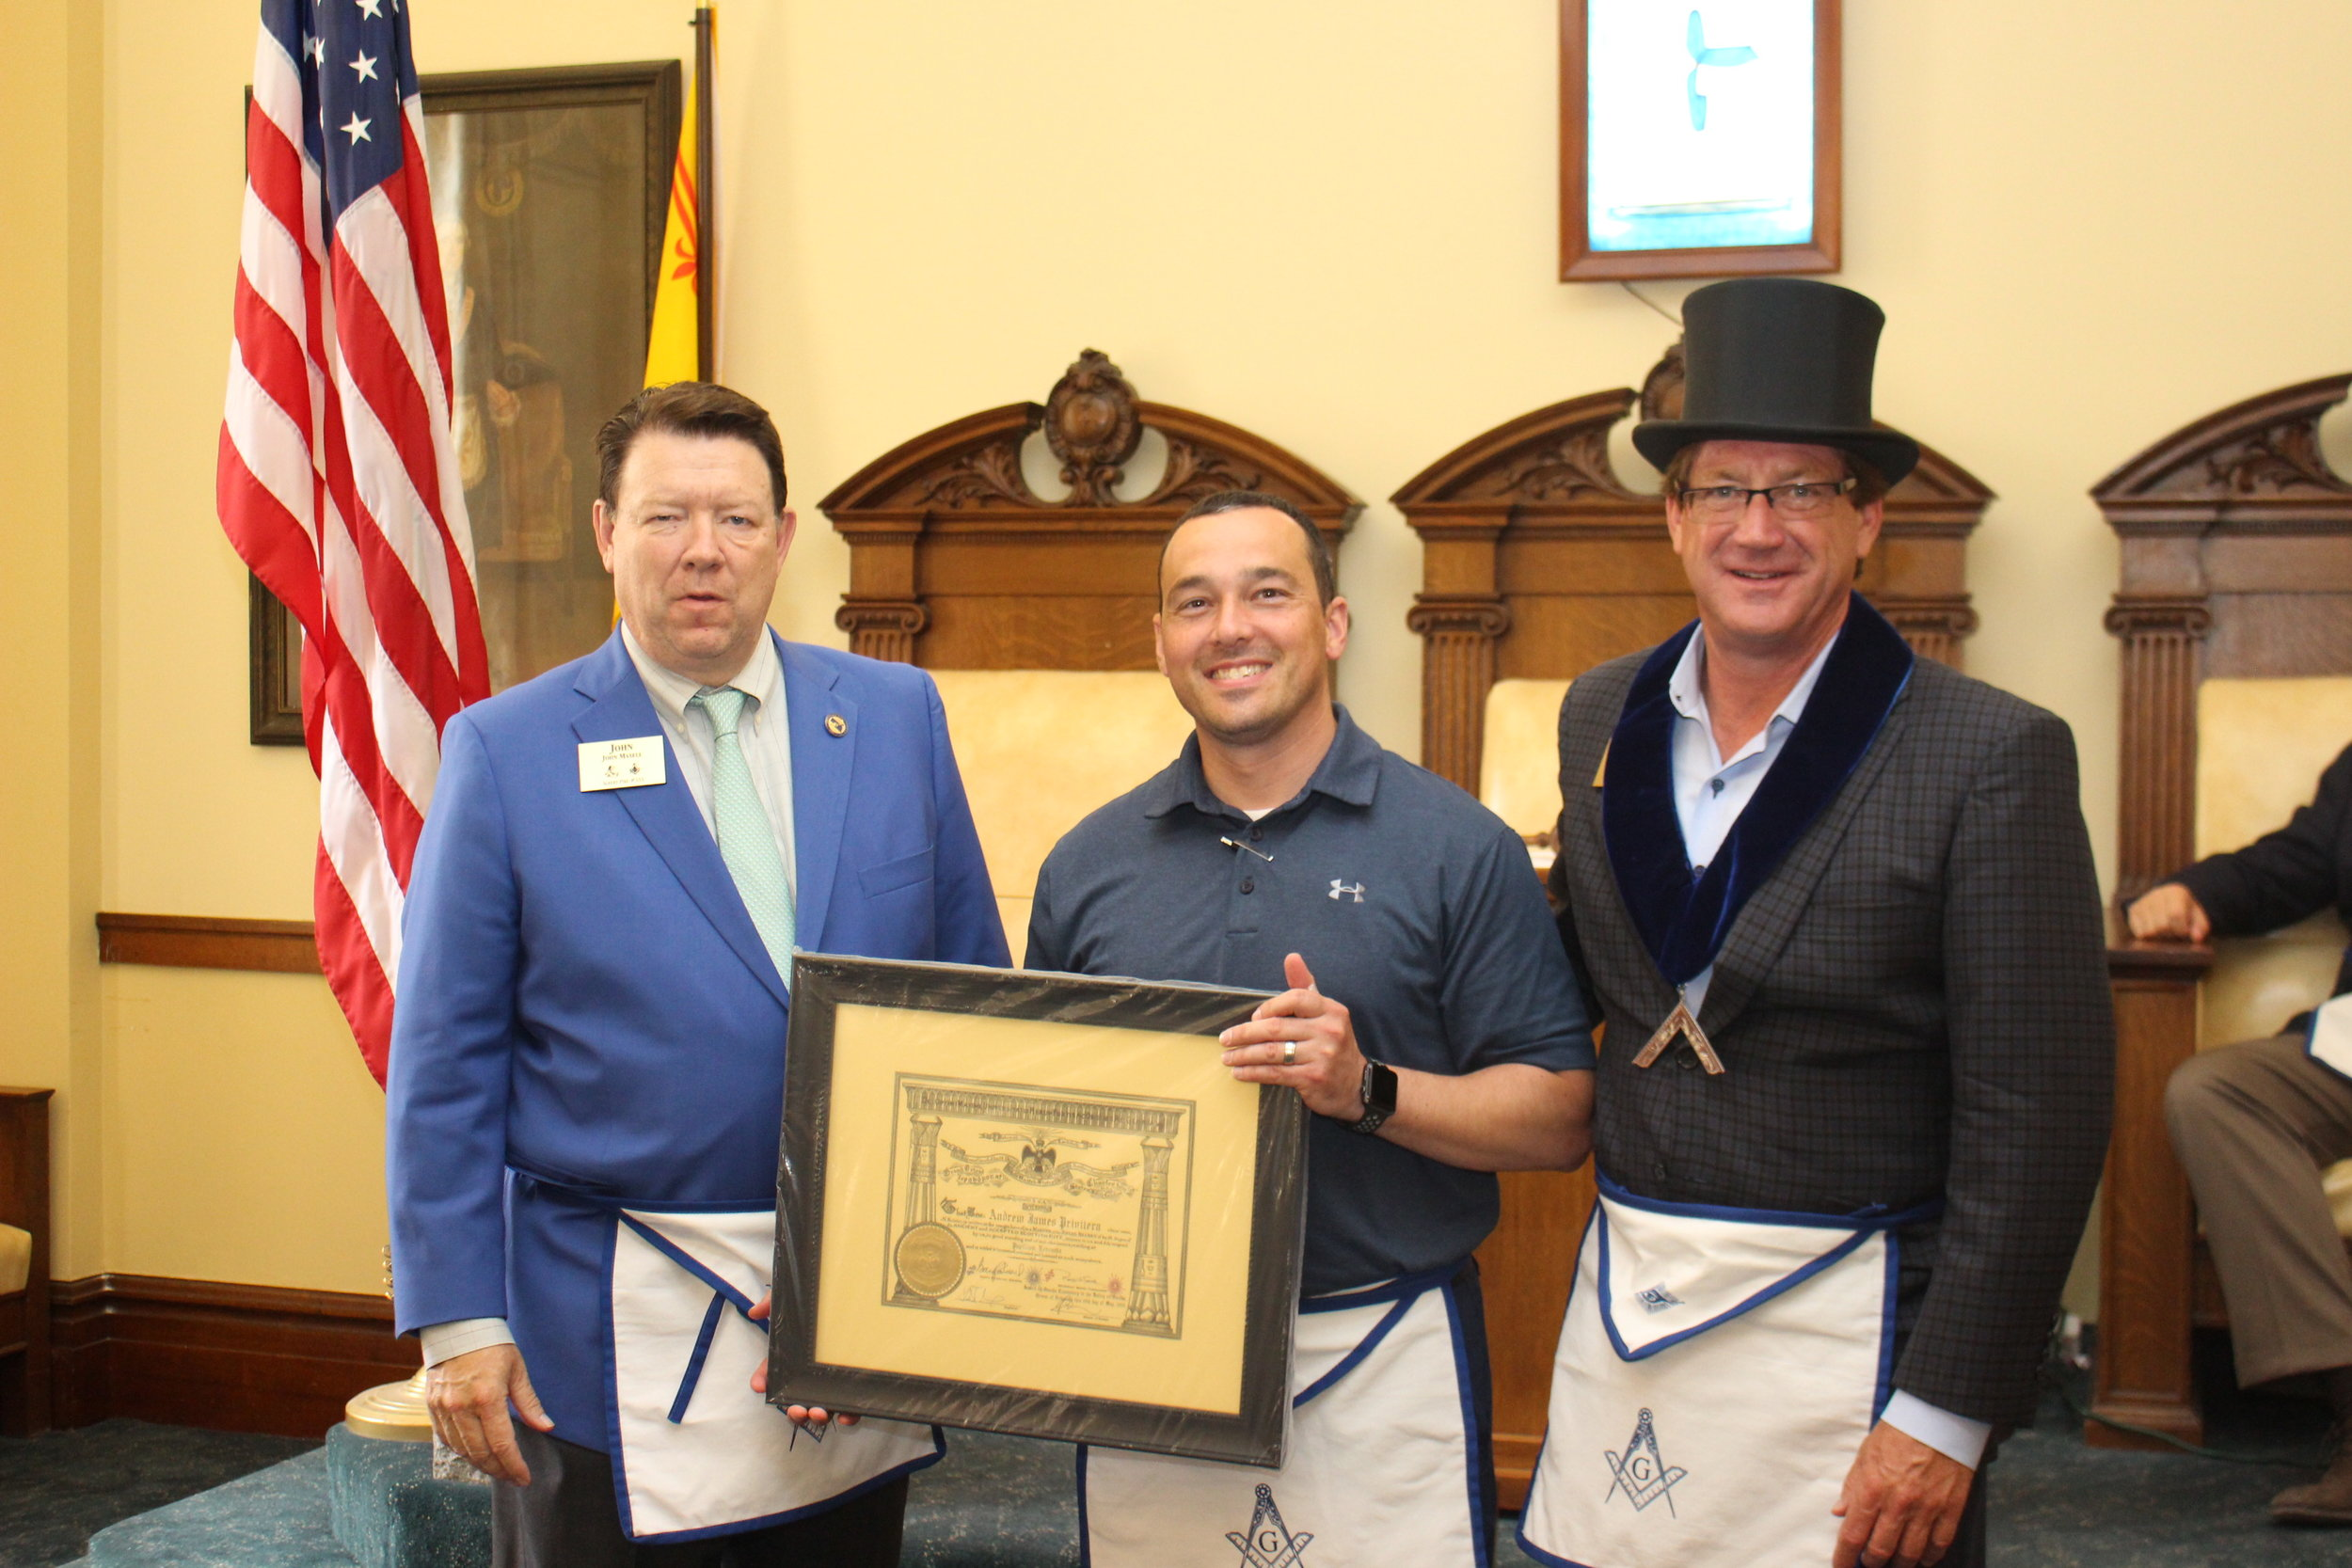 John Maxell, General Secretary for the Scottish Rite, Brother Andrew Privitera, and WB Charles Sederstrom III, Worshipful Master of Albert Pike Lodge #333